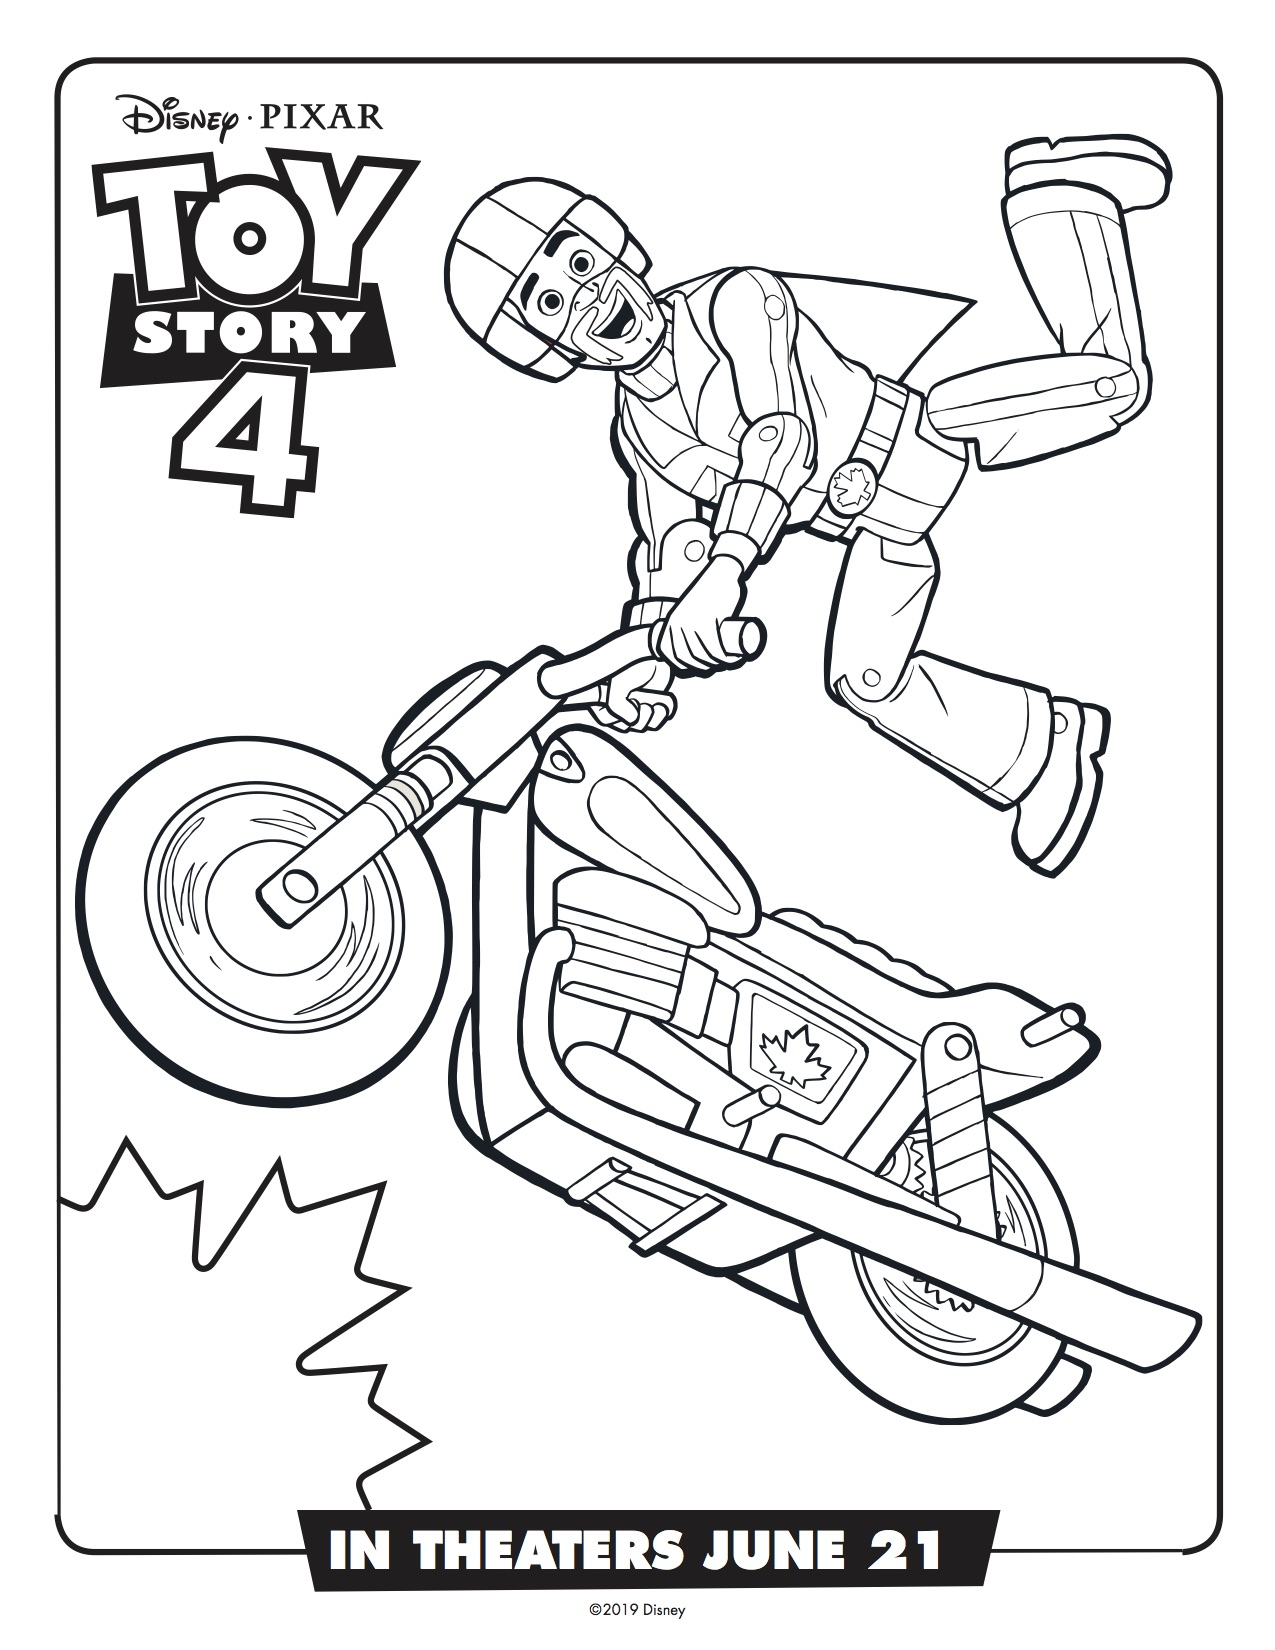 Toy story 4 duke caboom printable coloring page simply sweet days